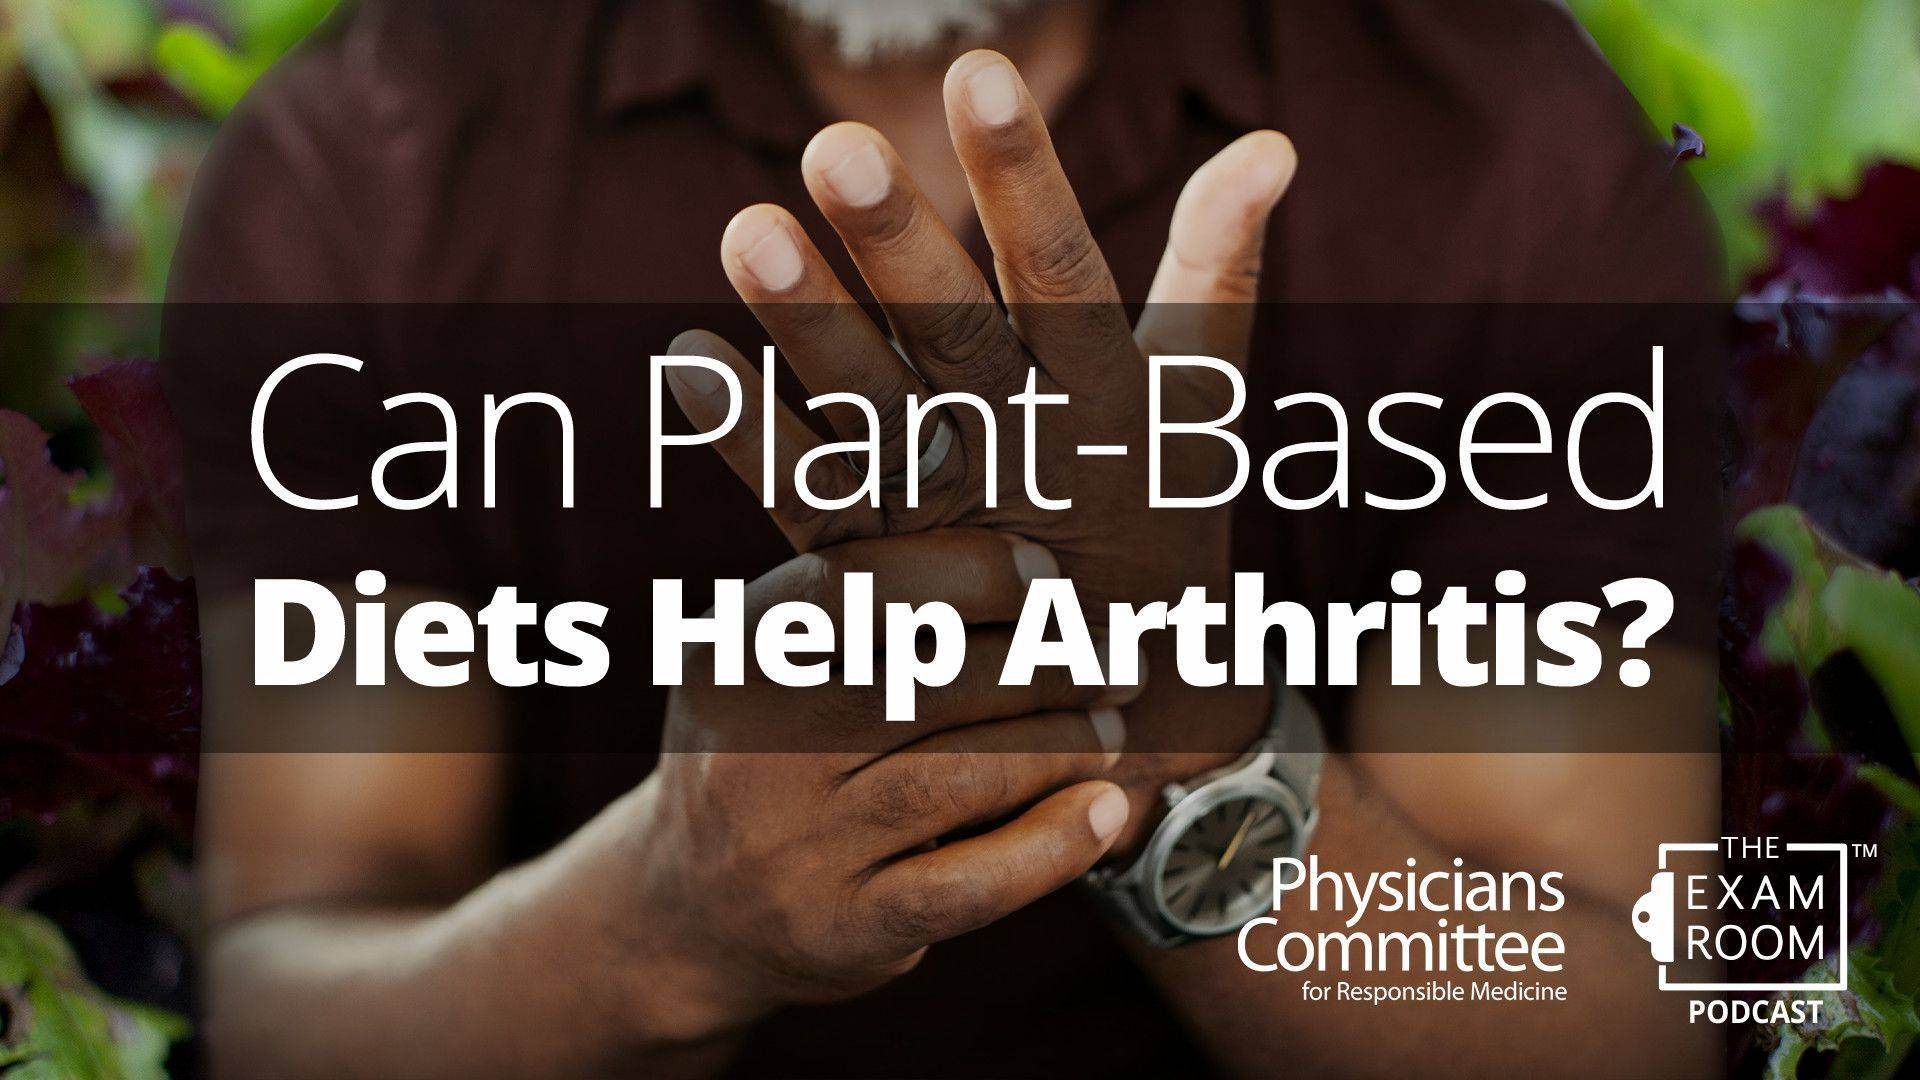 Can Plant-Based Diets Help Arthritis? | Doctor's Mailbag With Dr. Neal Barnard